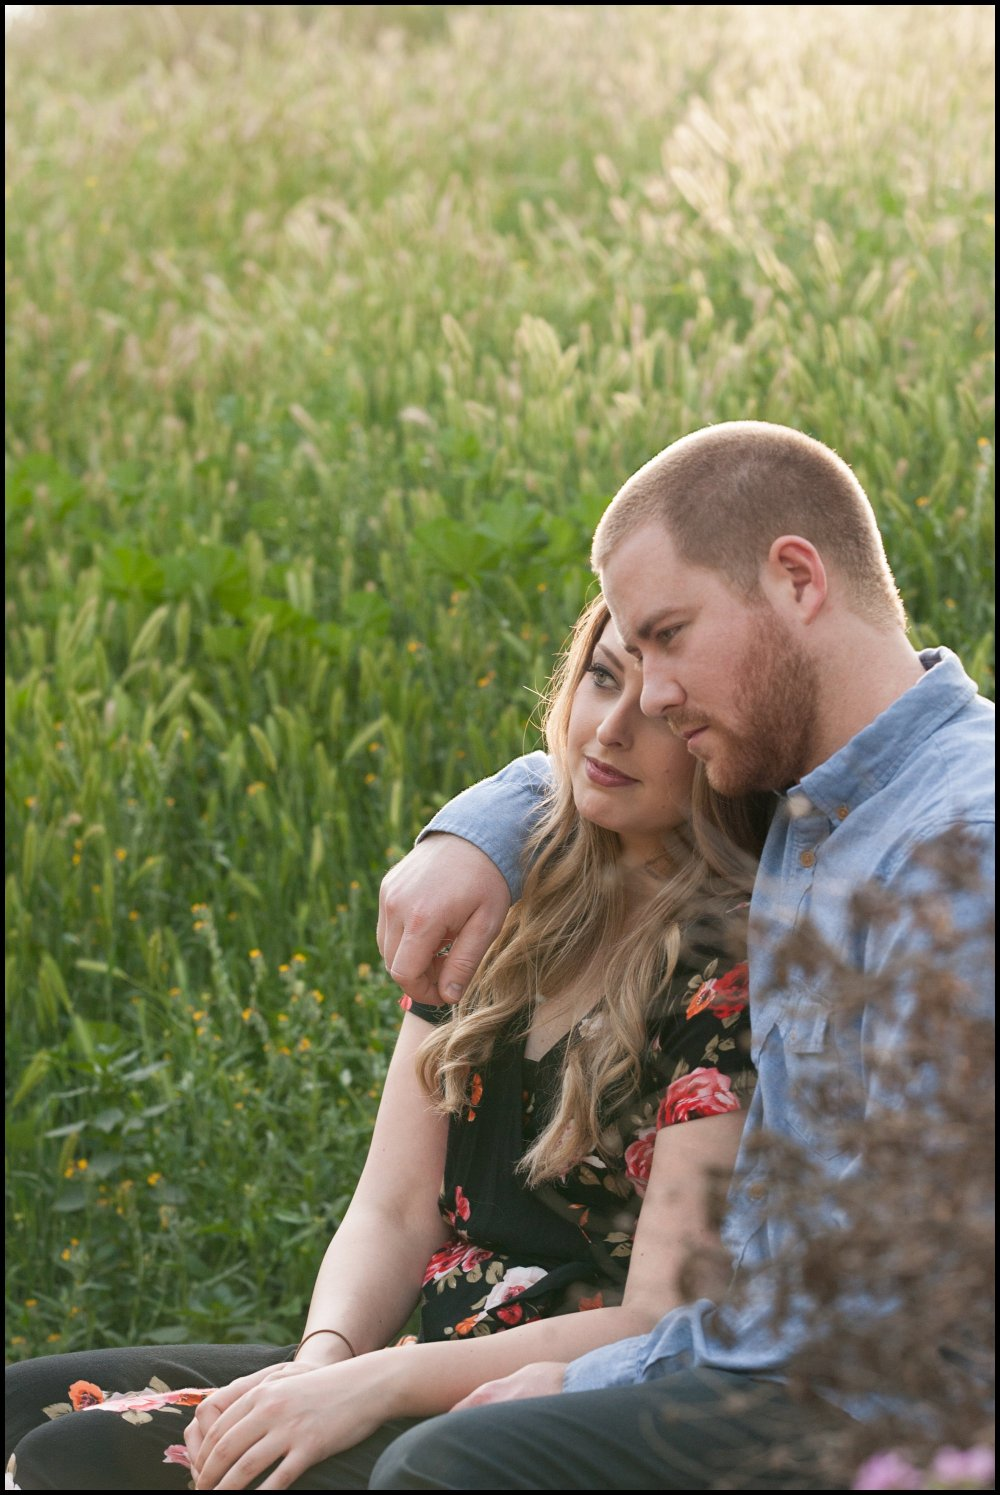 cassia_karin_photography_cj_hillary_simi_valley_california_engagement_shoot_tunnel_trees_love-33.jpg